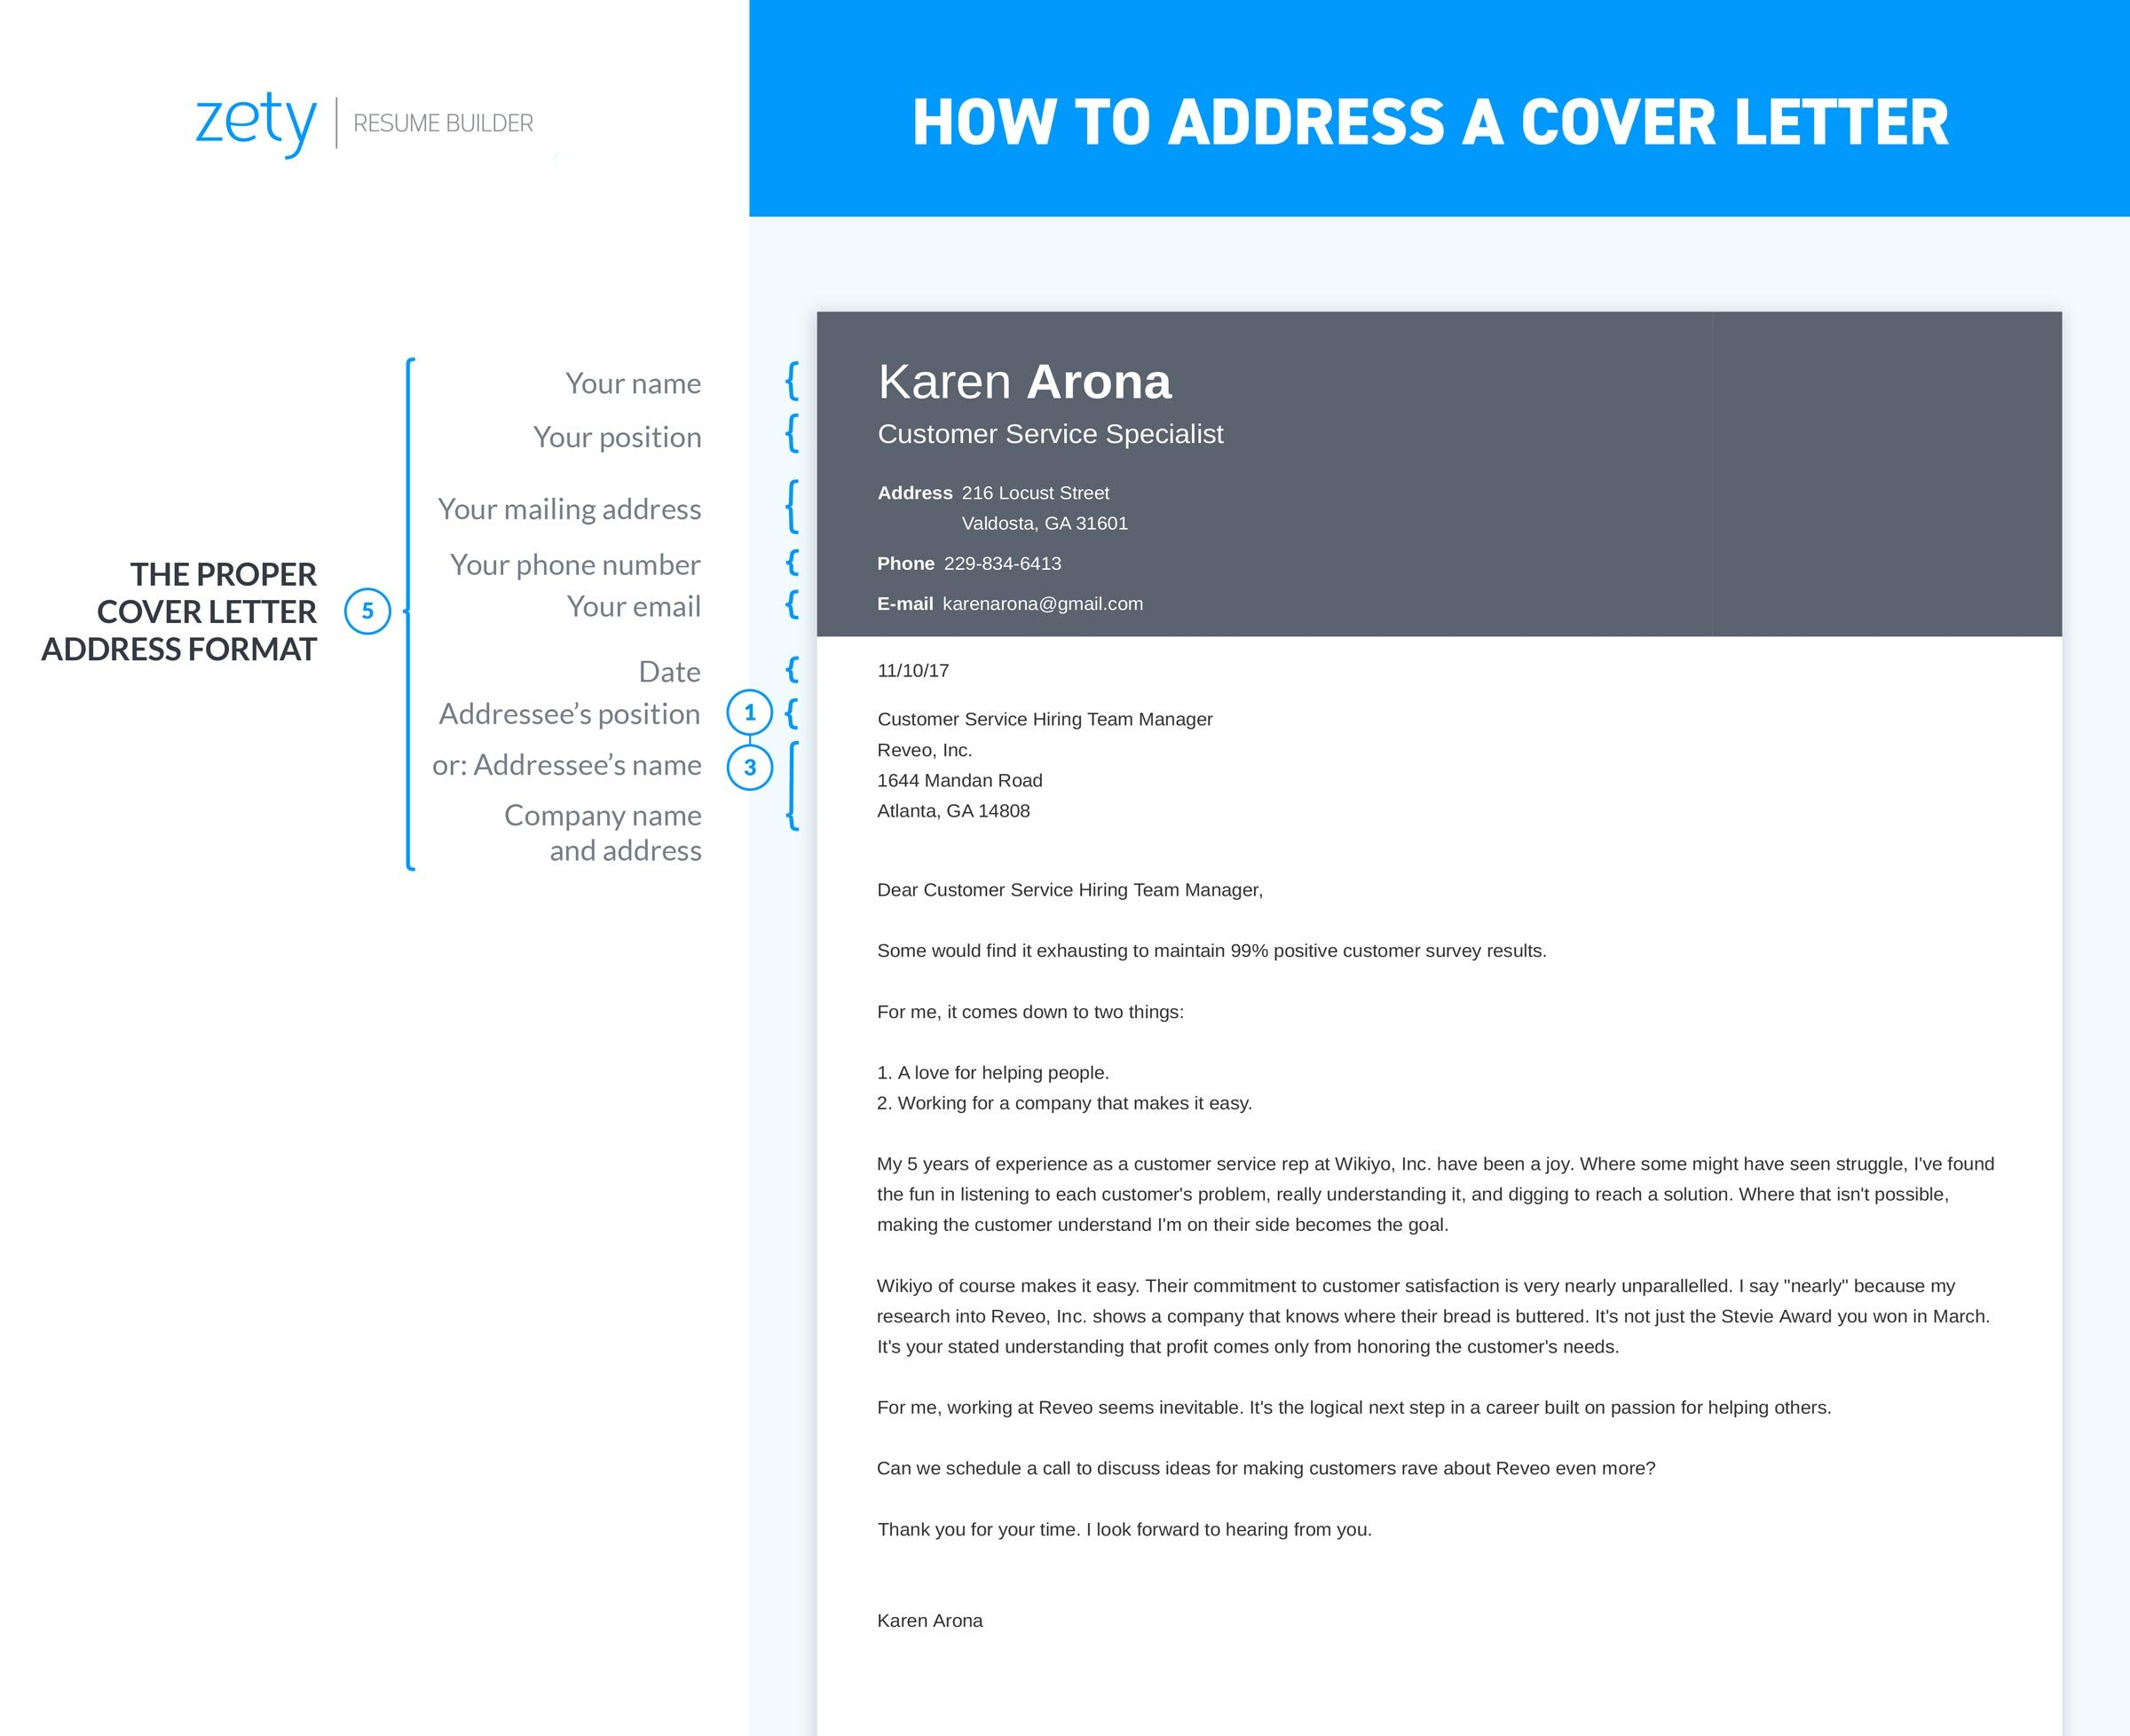 10 Easy-to-Fix Cover Letter Mistakes recommend